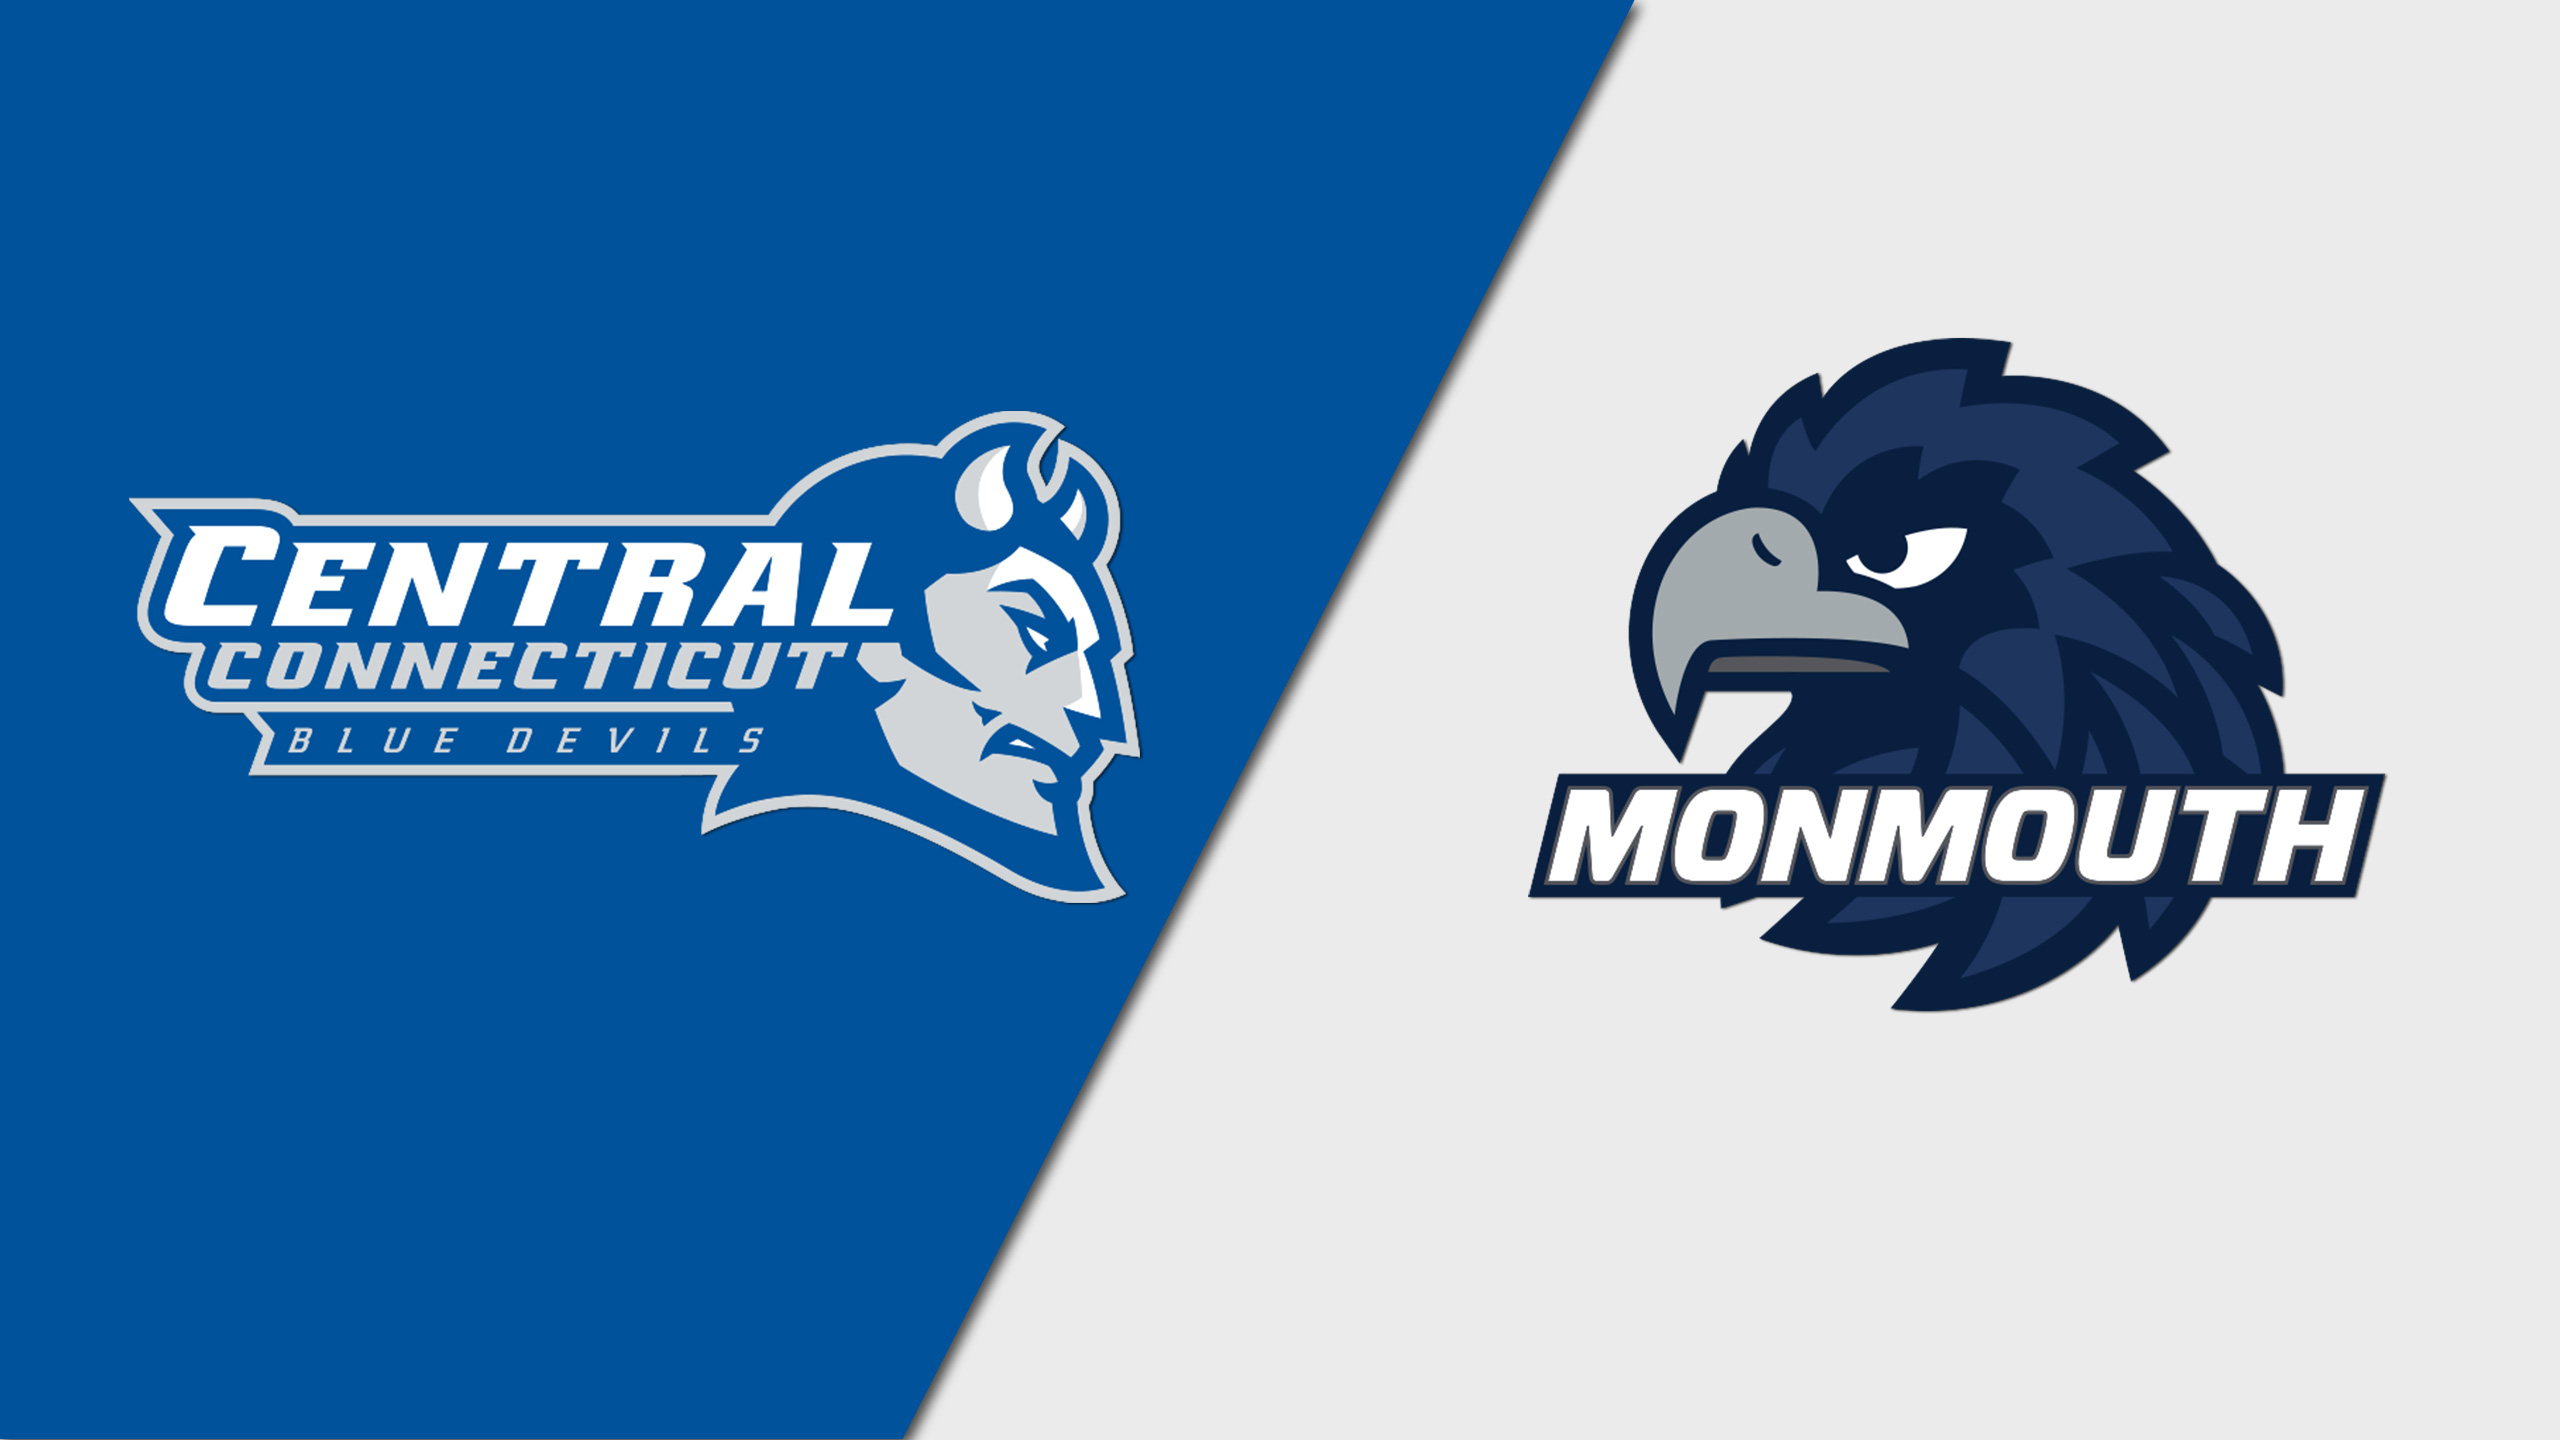 Central Connecticut State vs. Monmouth (W Lacrosse)